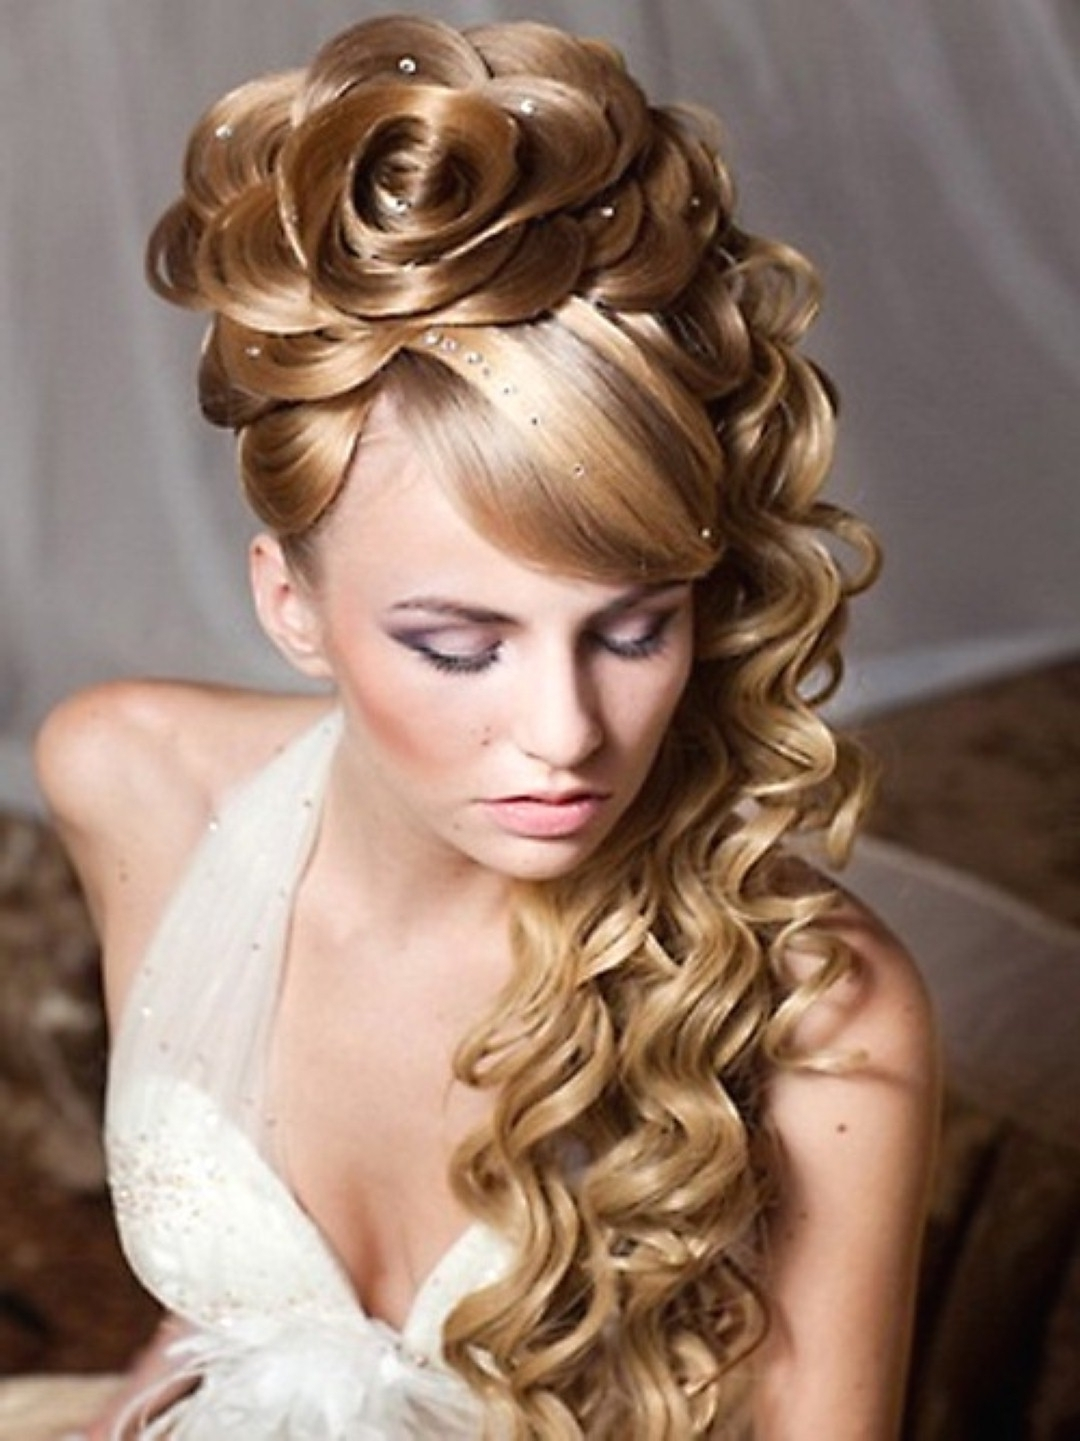 Wedding Hairstyles Image Of Cute For Long Hair 50th Anniversary Within Recent Elegant Wedding Hairstyles For Long Hair (View 12 of 15)